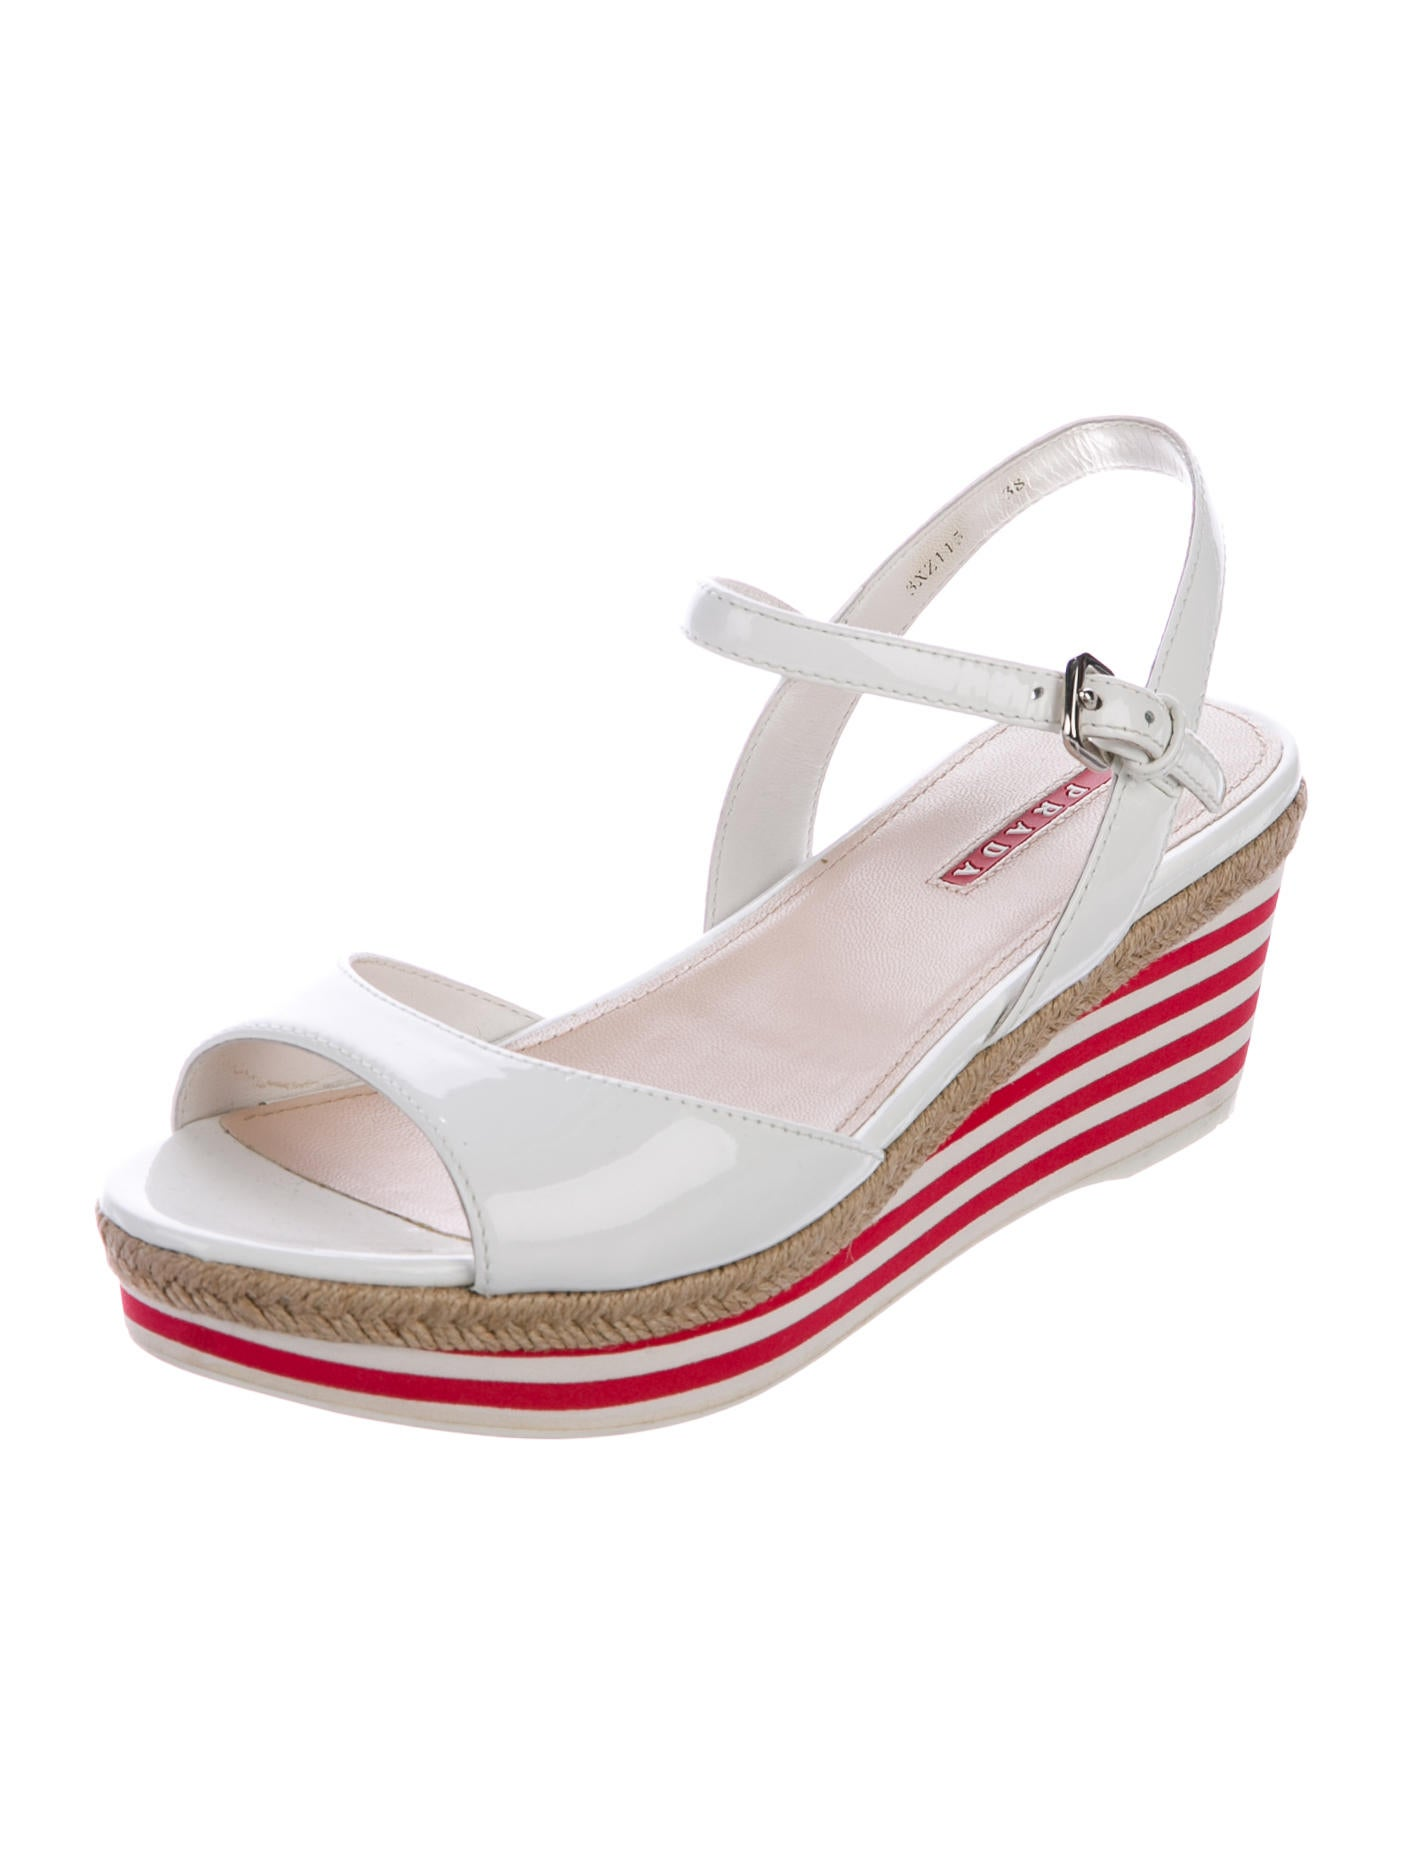 prada sport patent leather wedge sandals shoes